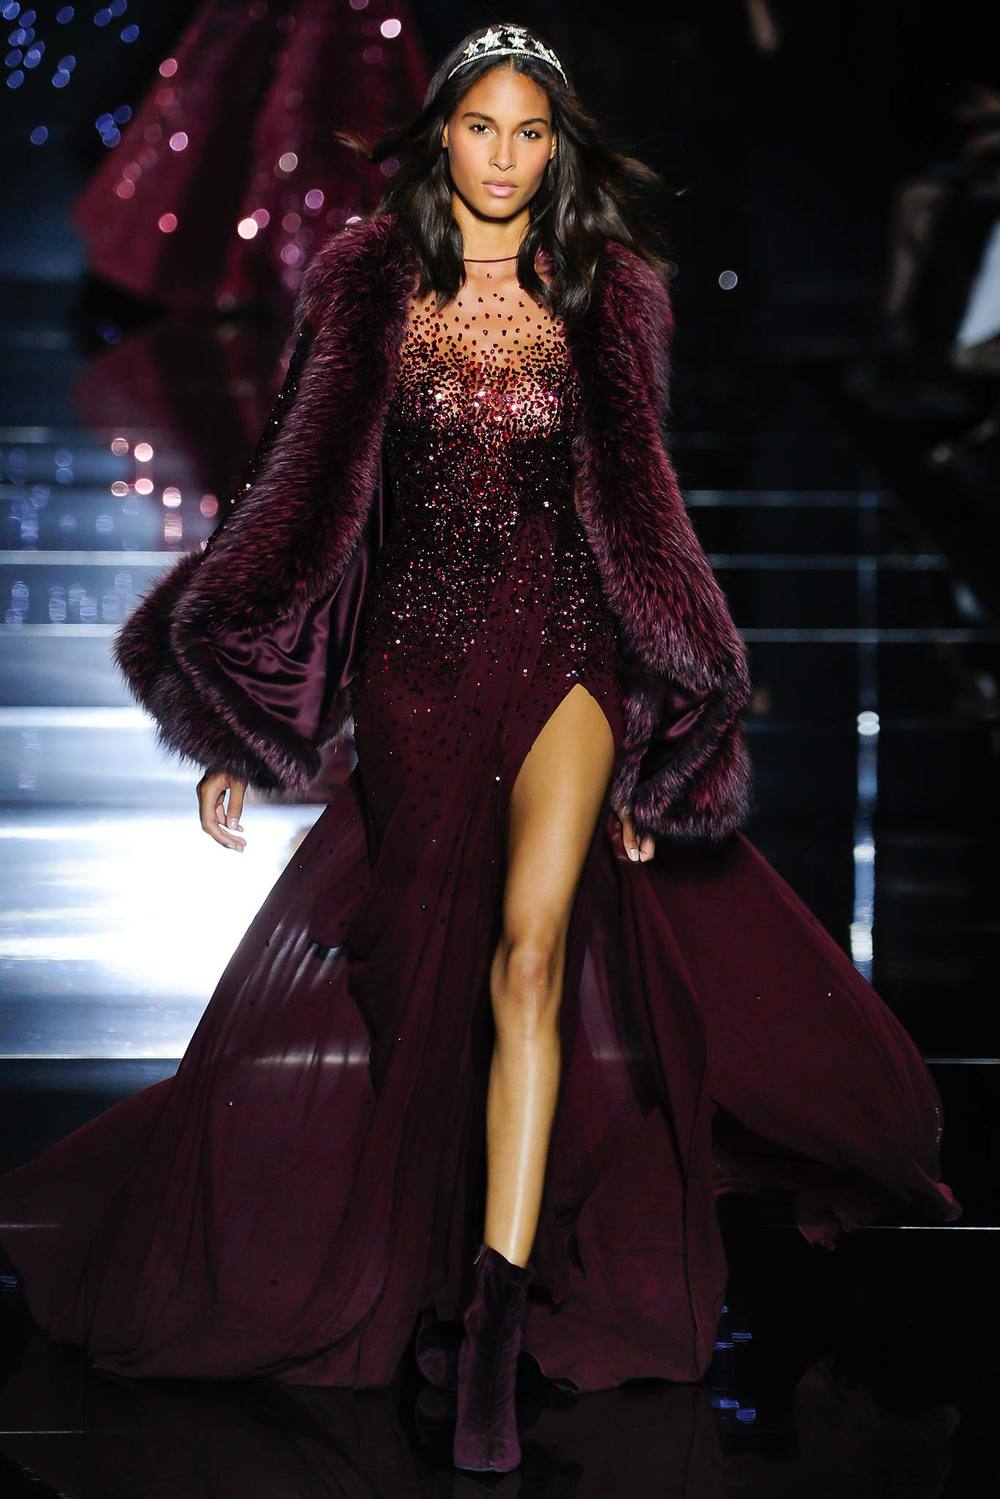 Designer: Zuhair Murad, Photo Credit: Style.com